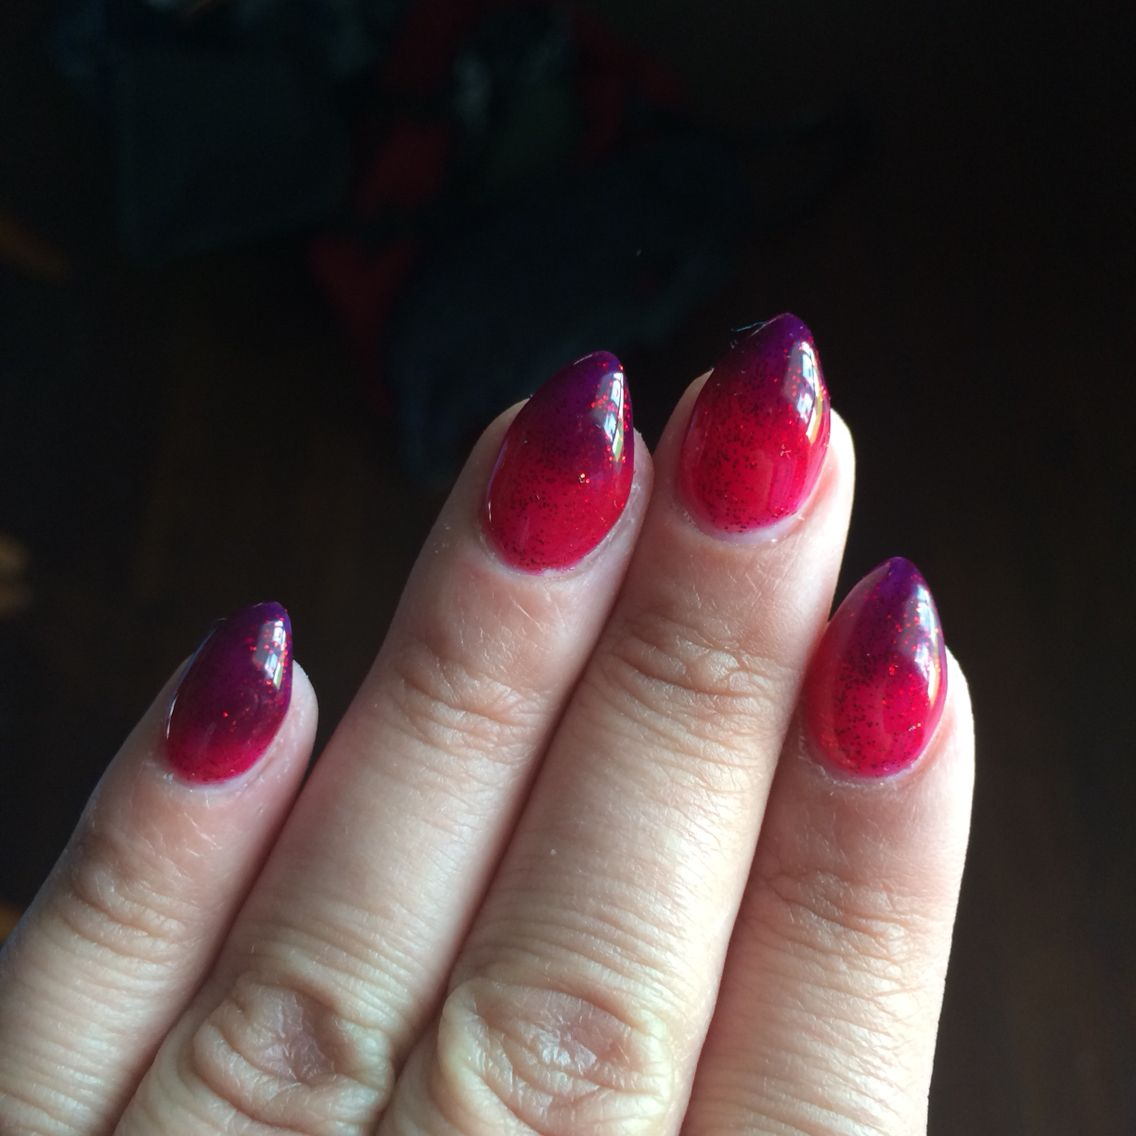 Mood color changing nail polish in scarlet star | Color ...